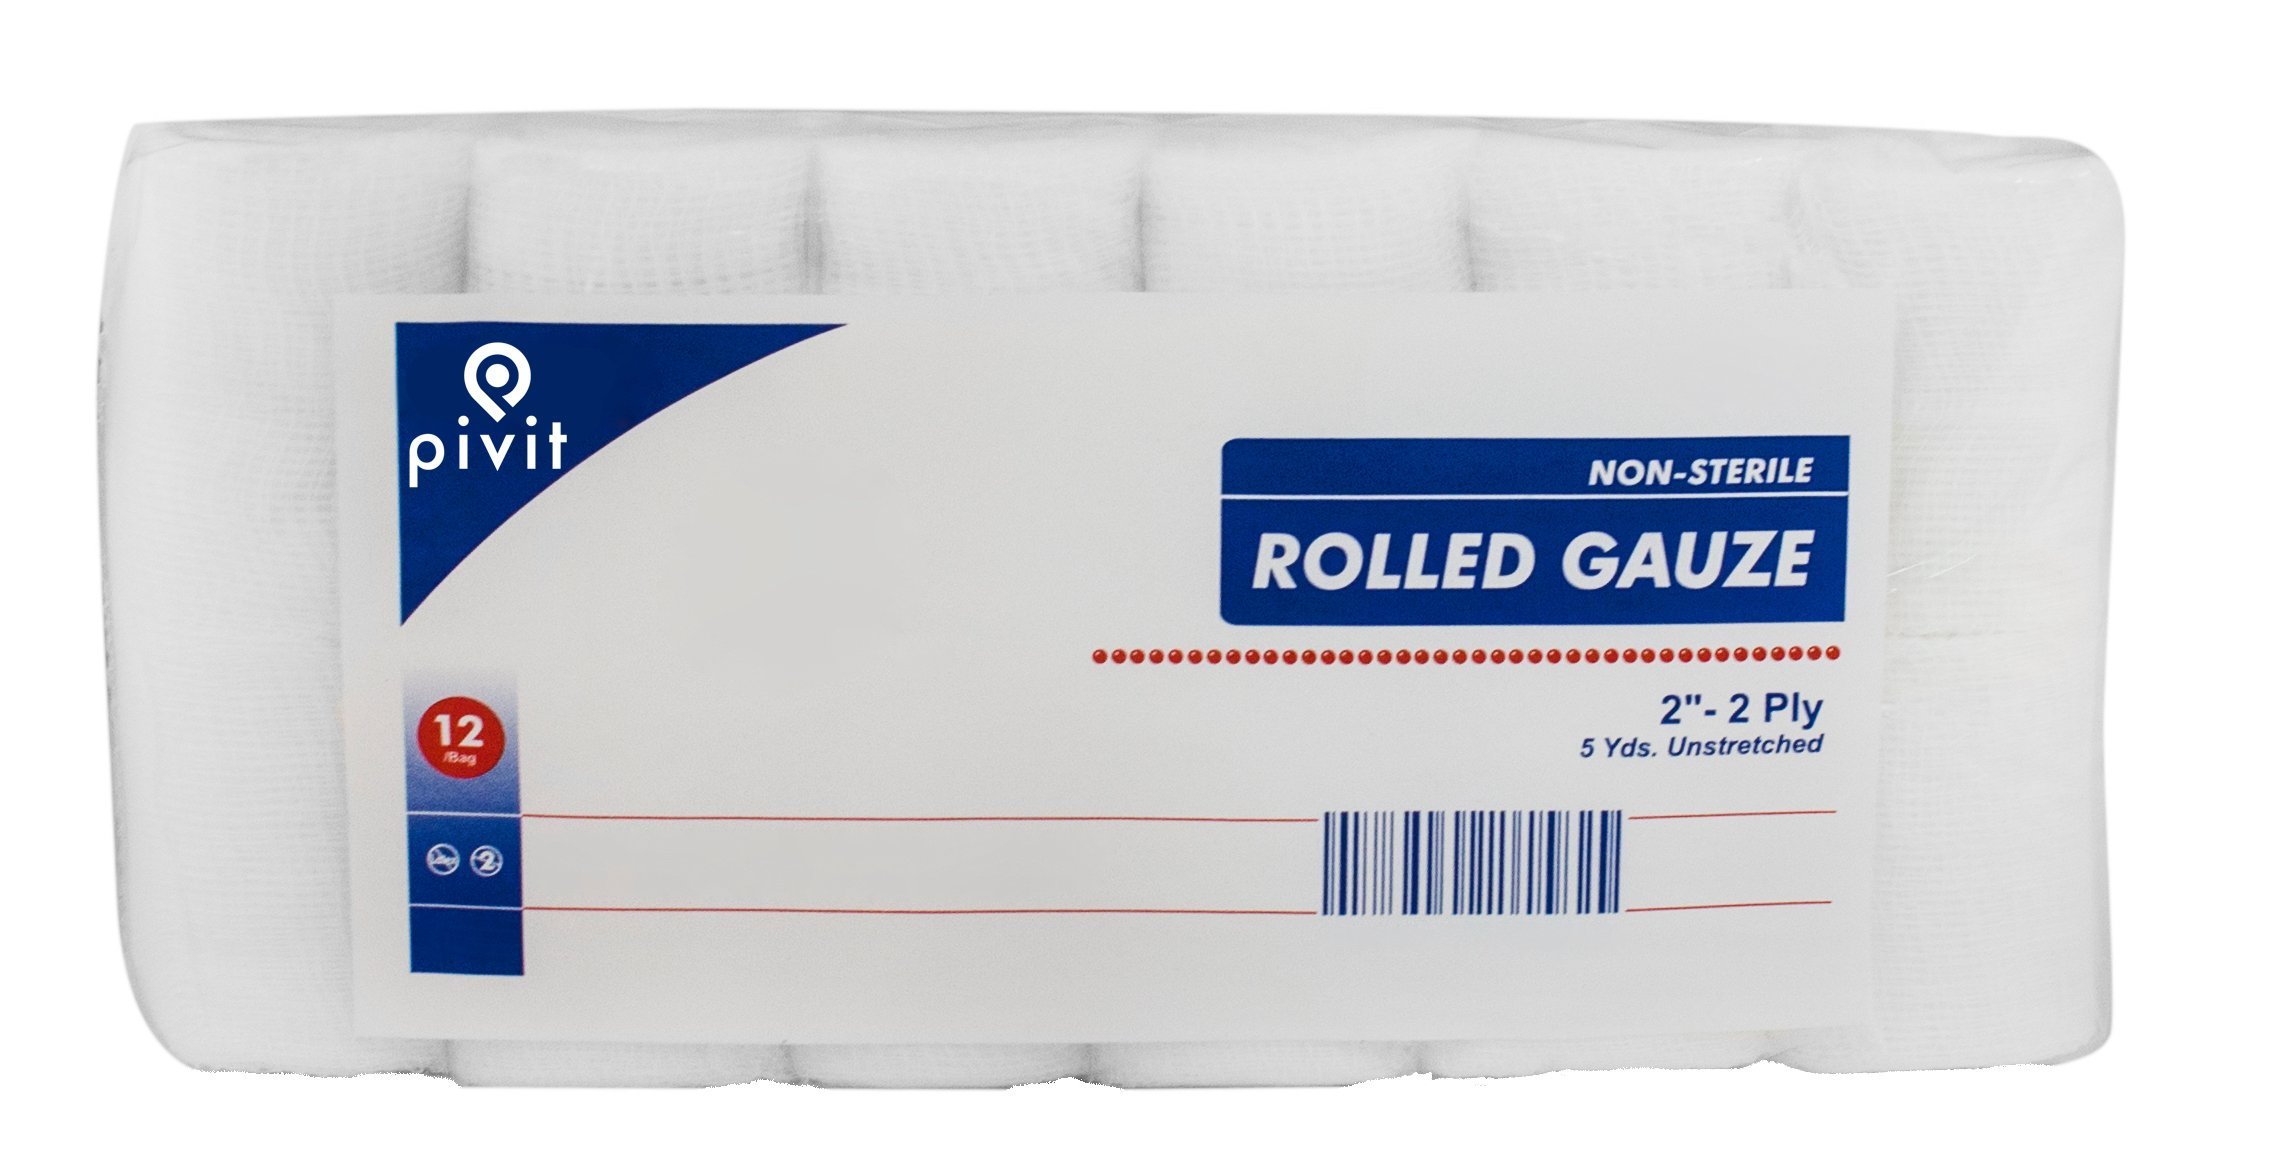 Pivit Non-Sterile Gauze Wrap Rolls | 2'' x 5 YDS 2-Ply | Pack of 12 | 100% Woven Cotton Bandages Just Stretch Wrap Cut | Fast-Wicking Absorbent and Breathable | Easily Conforms to Hands Ankles & Knees